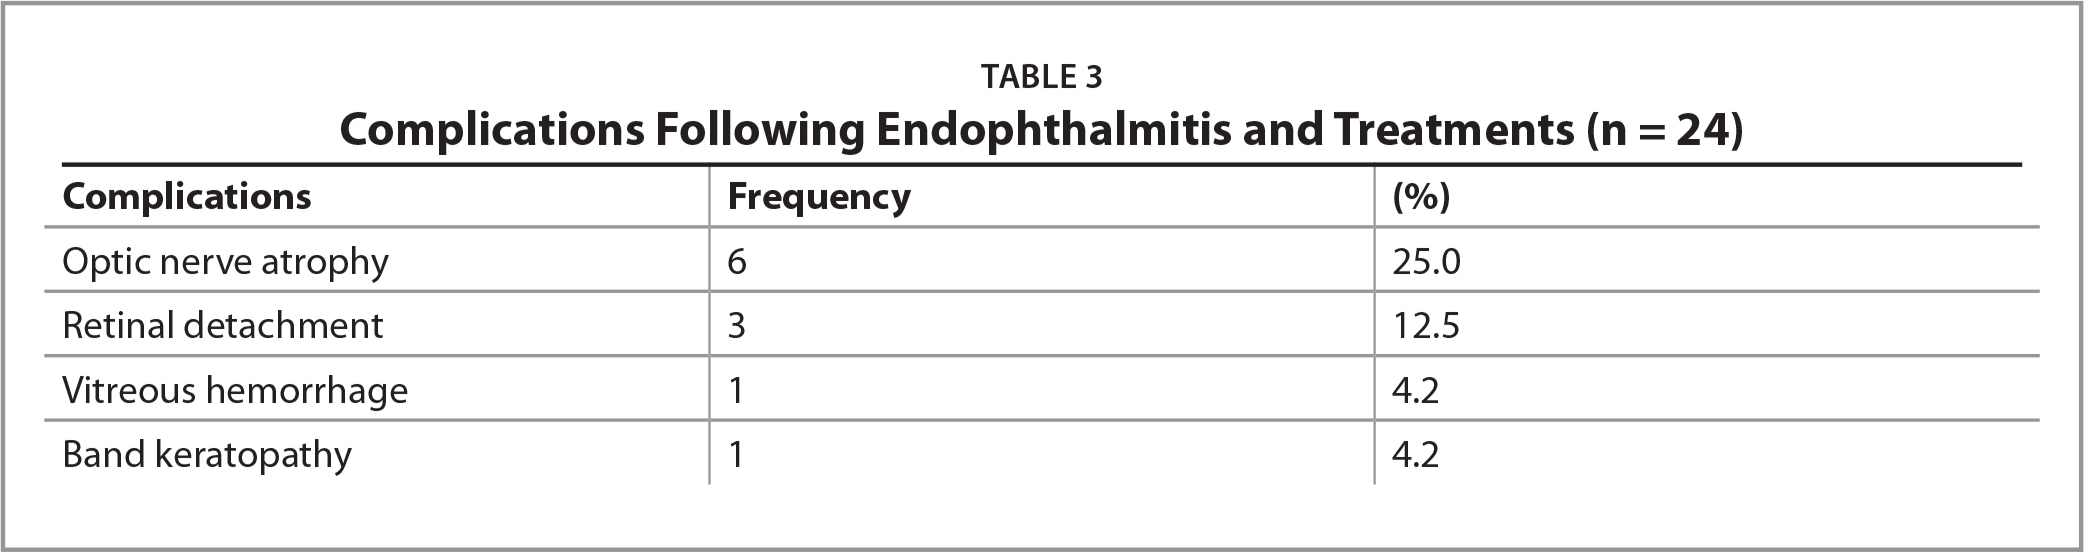 Complications Following Endophthalmitis and Treatments (n = 24)